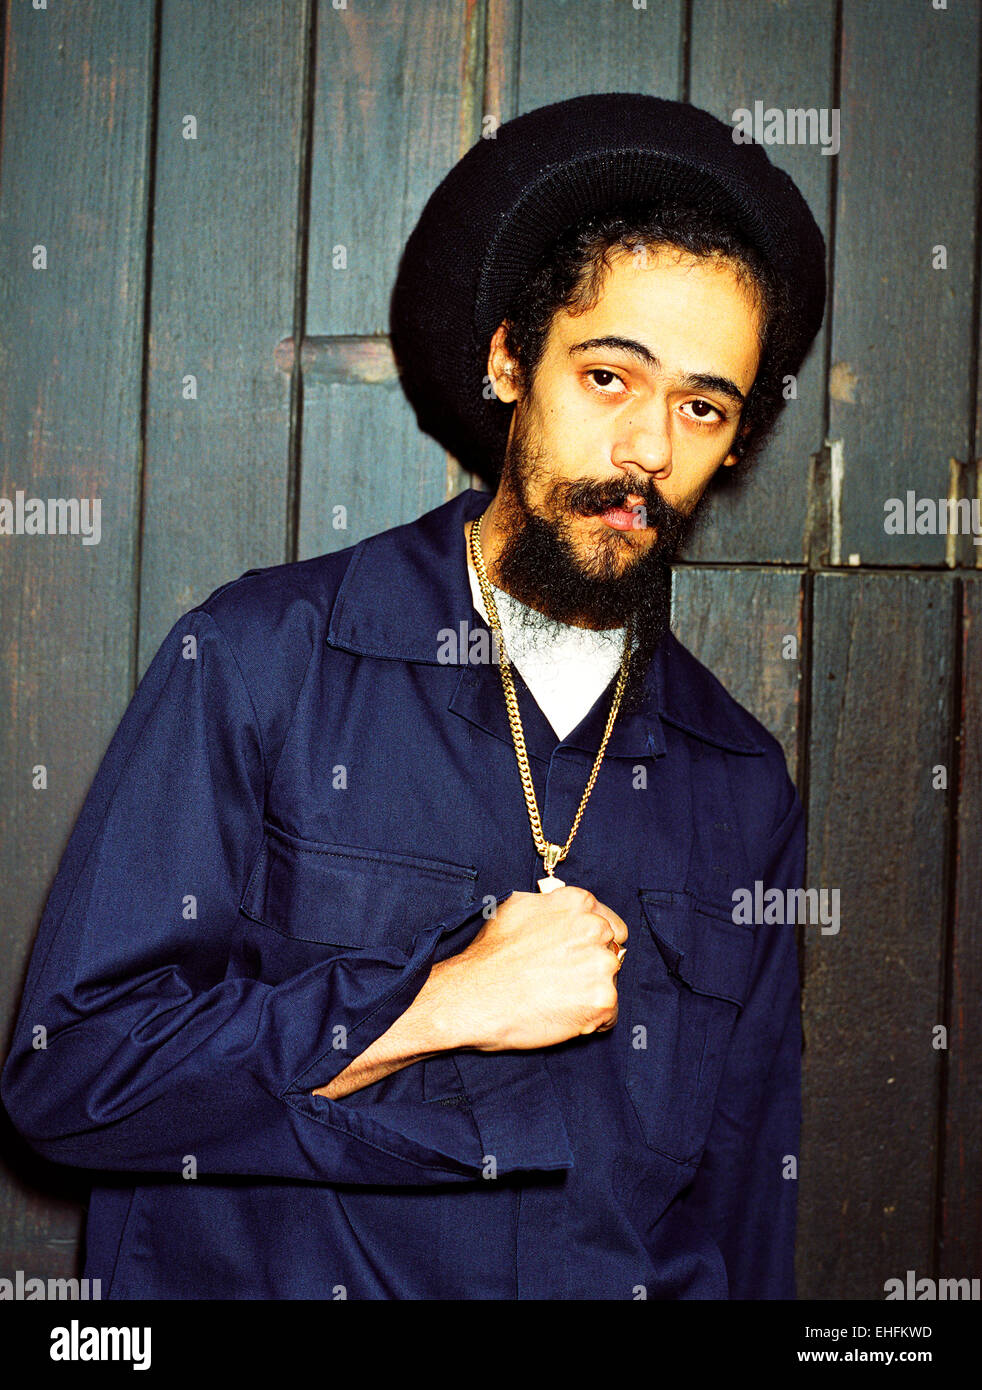 Portrait of damian marley stock photo 79635513 alamy portrait of damian marley thecheapjerseys Choice Image